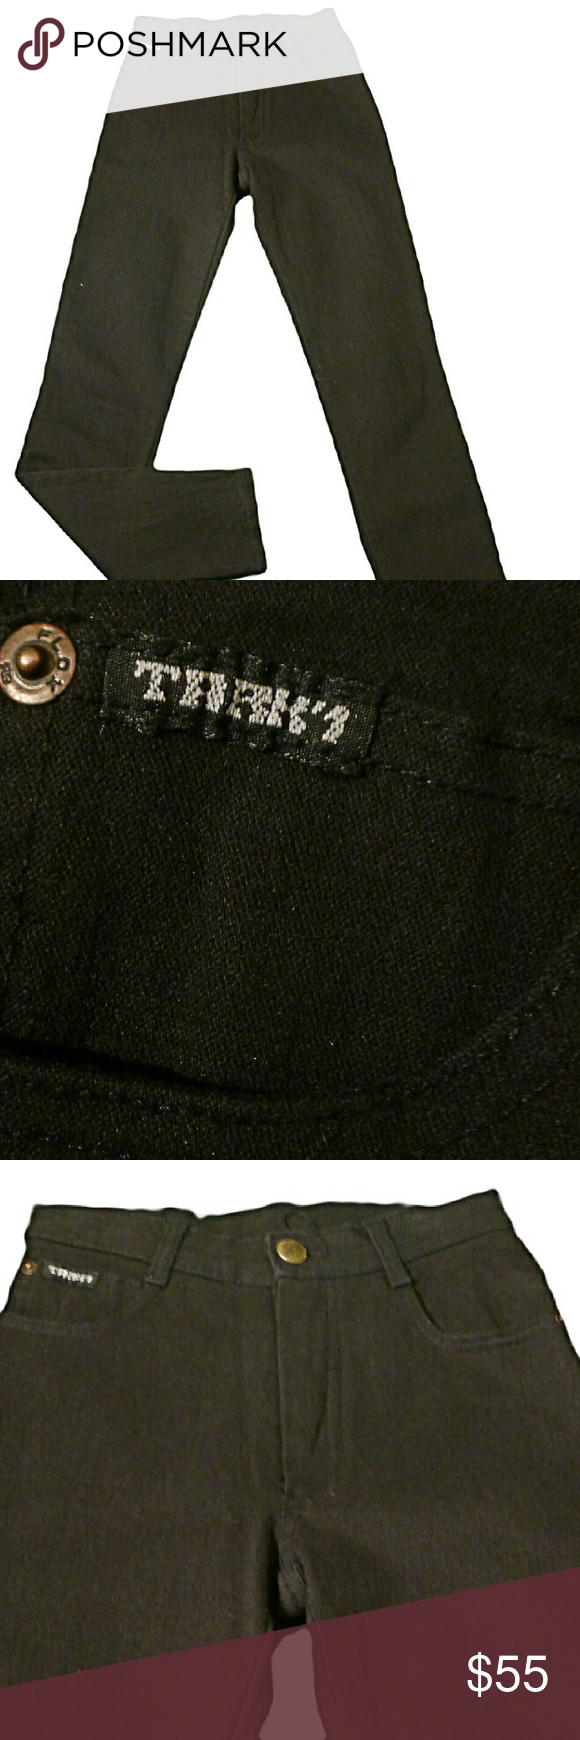 """Tark'1 Jeans Black Size 1 Pair of French brand Tark'1 jeans in great condition! These are tee tiny so please review measurements.  These jeans are a perfect match with the Tsunami Vest in my closet.  Waist: 21"""" (measured across waist and doubled) Rise: 8"""" (measured from crotch to top of zipper) Inseam:  26"""" (measured from crotch to bottom of leg) Tark'1 Jeans"""